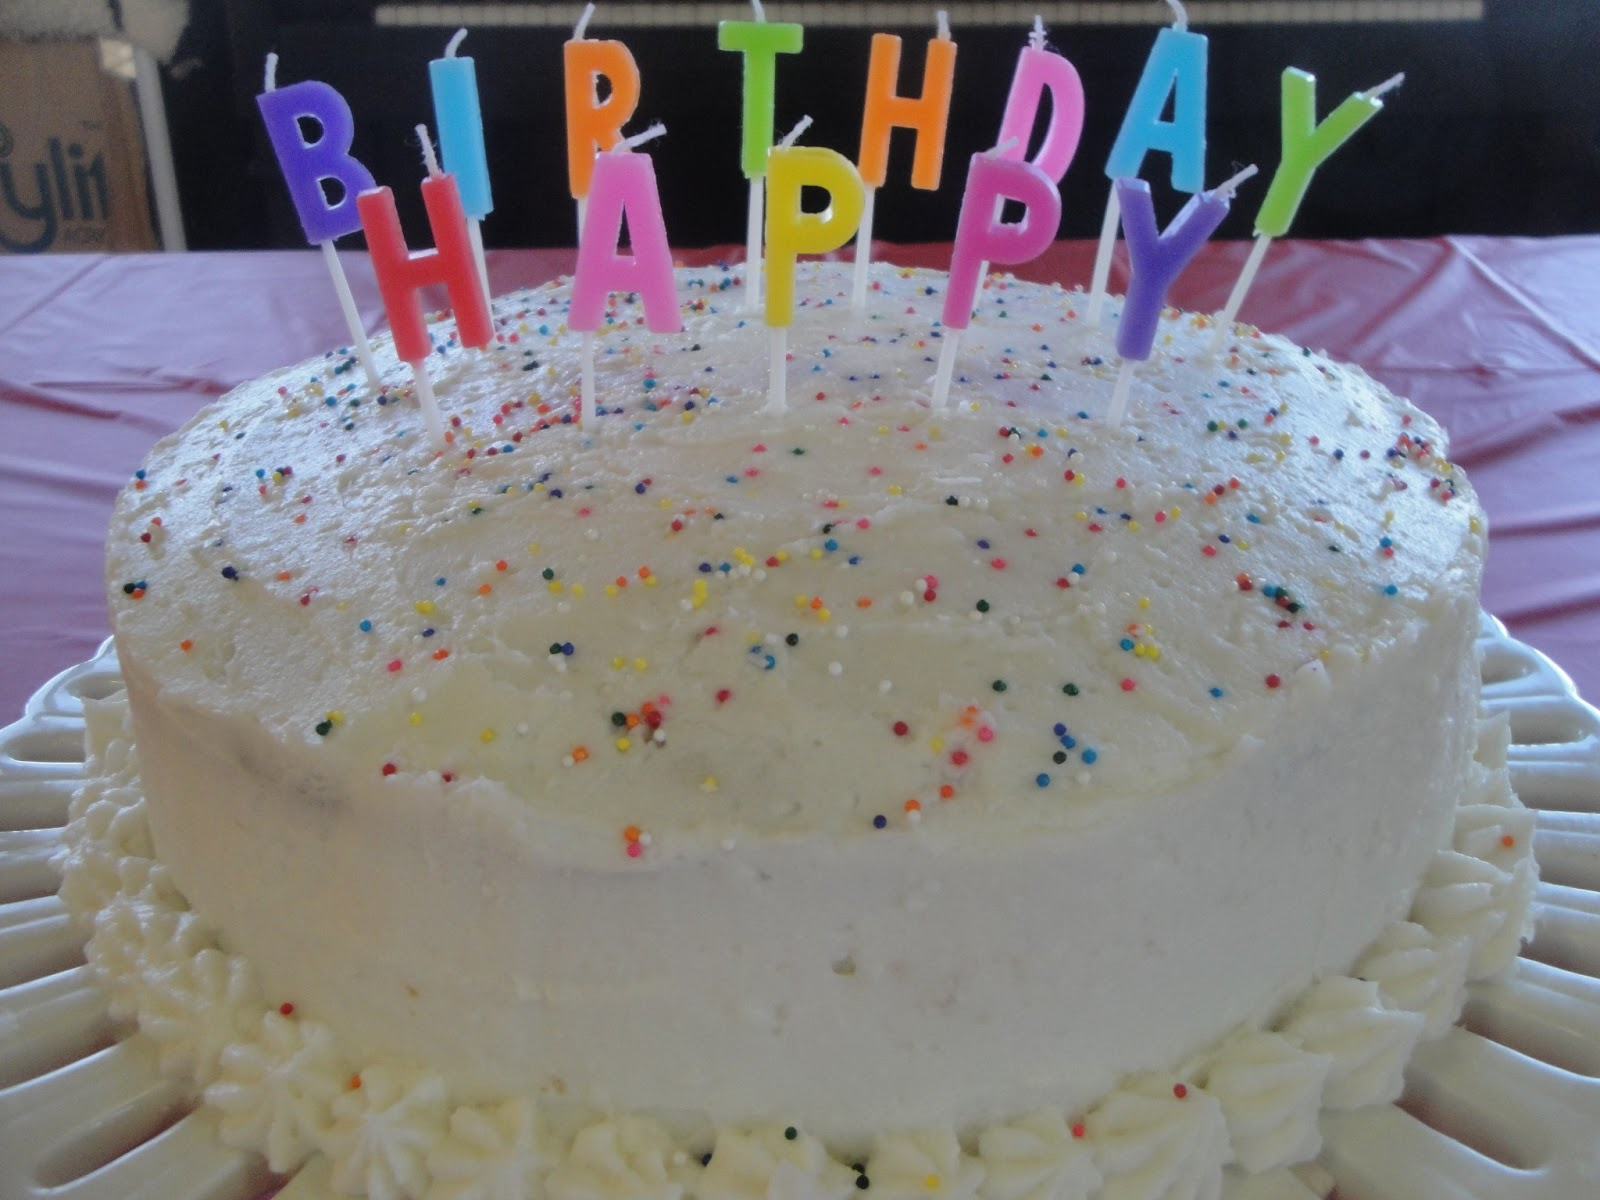 Gluten free and vegan birthday cake